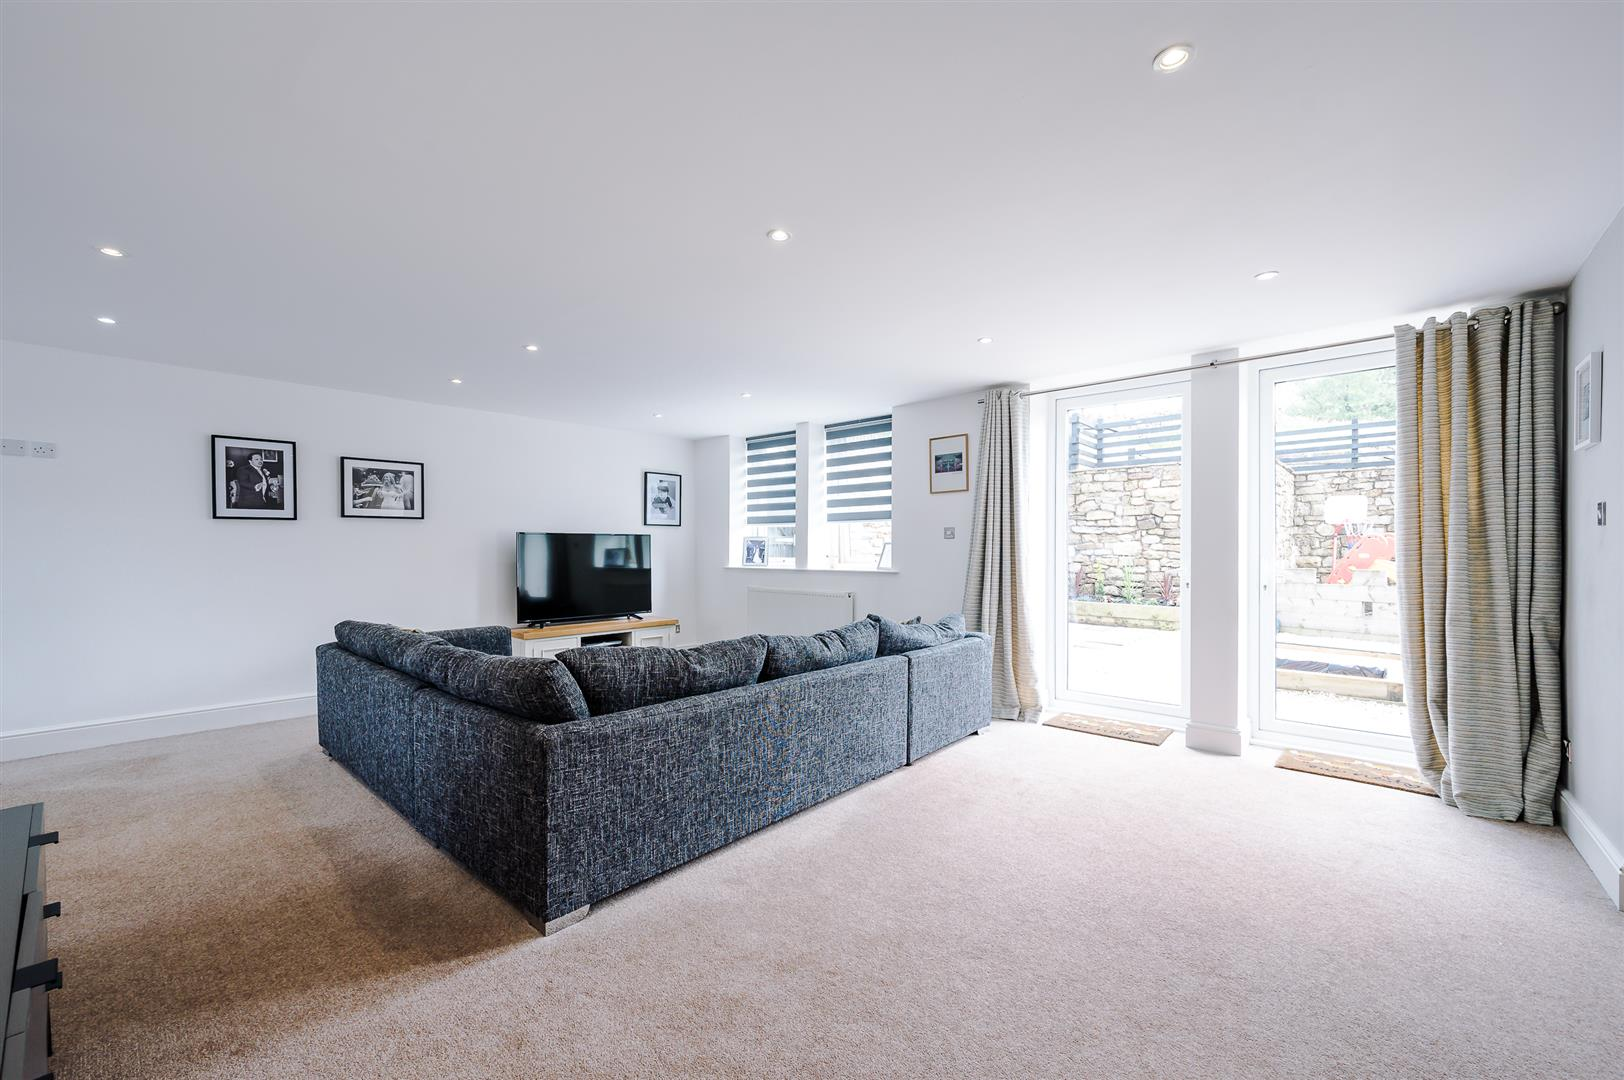 3 bedroom house For Sale in Bolton - DSC_5860.jpg.